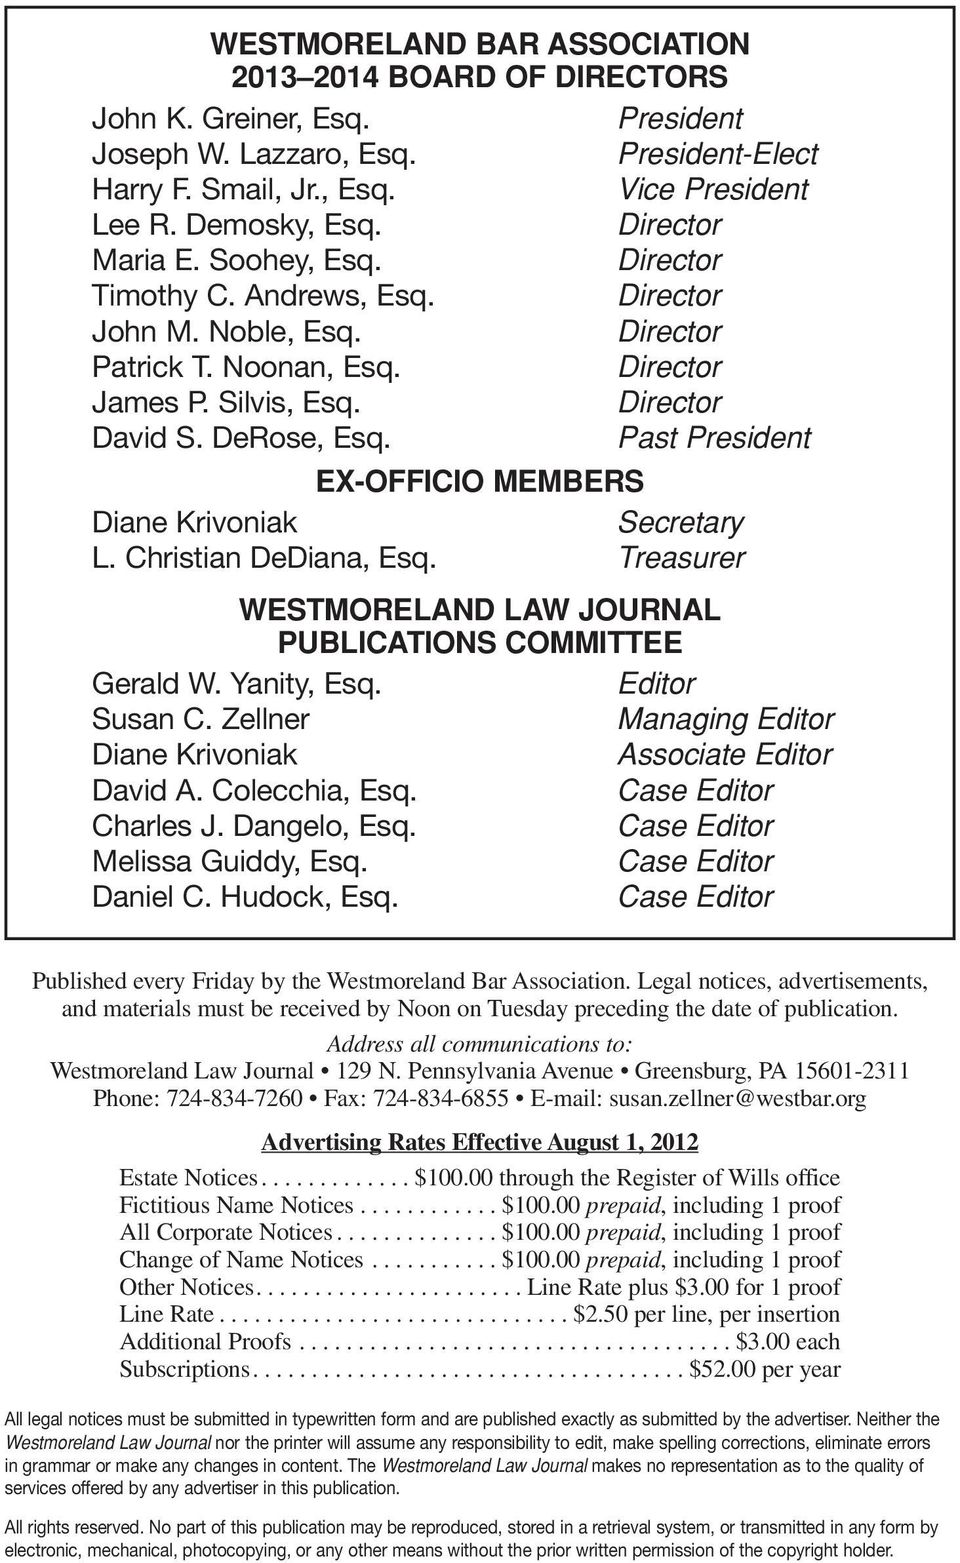 Christian DeDiana, Esq. Treasurer WESTMORELAND LAW JOURNAL PUBLICATIONS COMMITTEE Gerald W. Yanity, Esq. Editor Susan C. Zellner Managing Editor Diane Krivoniak Associate Editor David A.